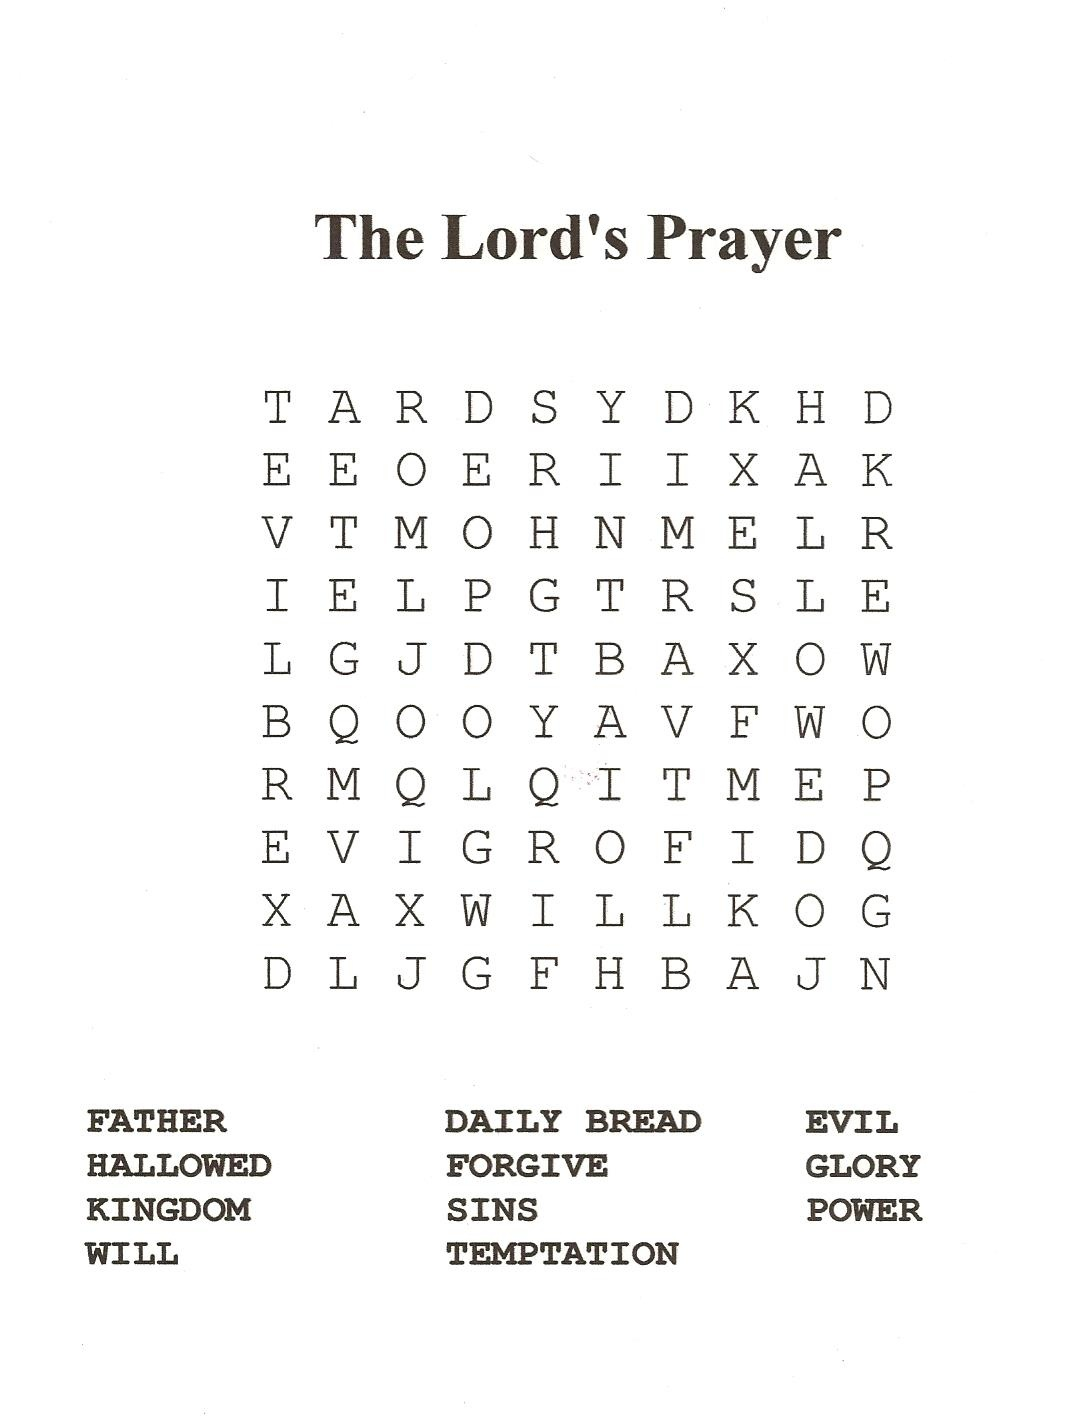 18 Fun Printable Bible Word Search Puzzles | Kittybabylove - Free Printable Catholic Word Search